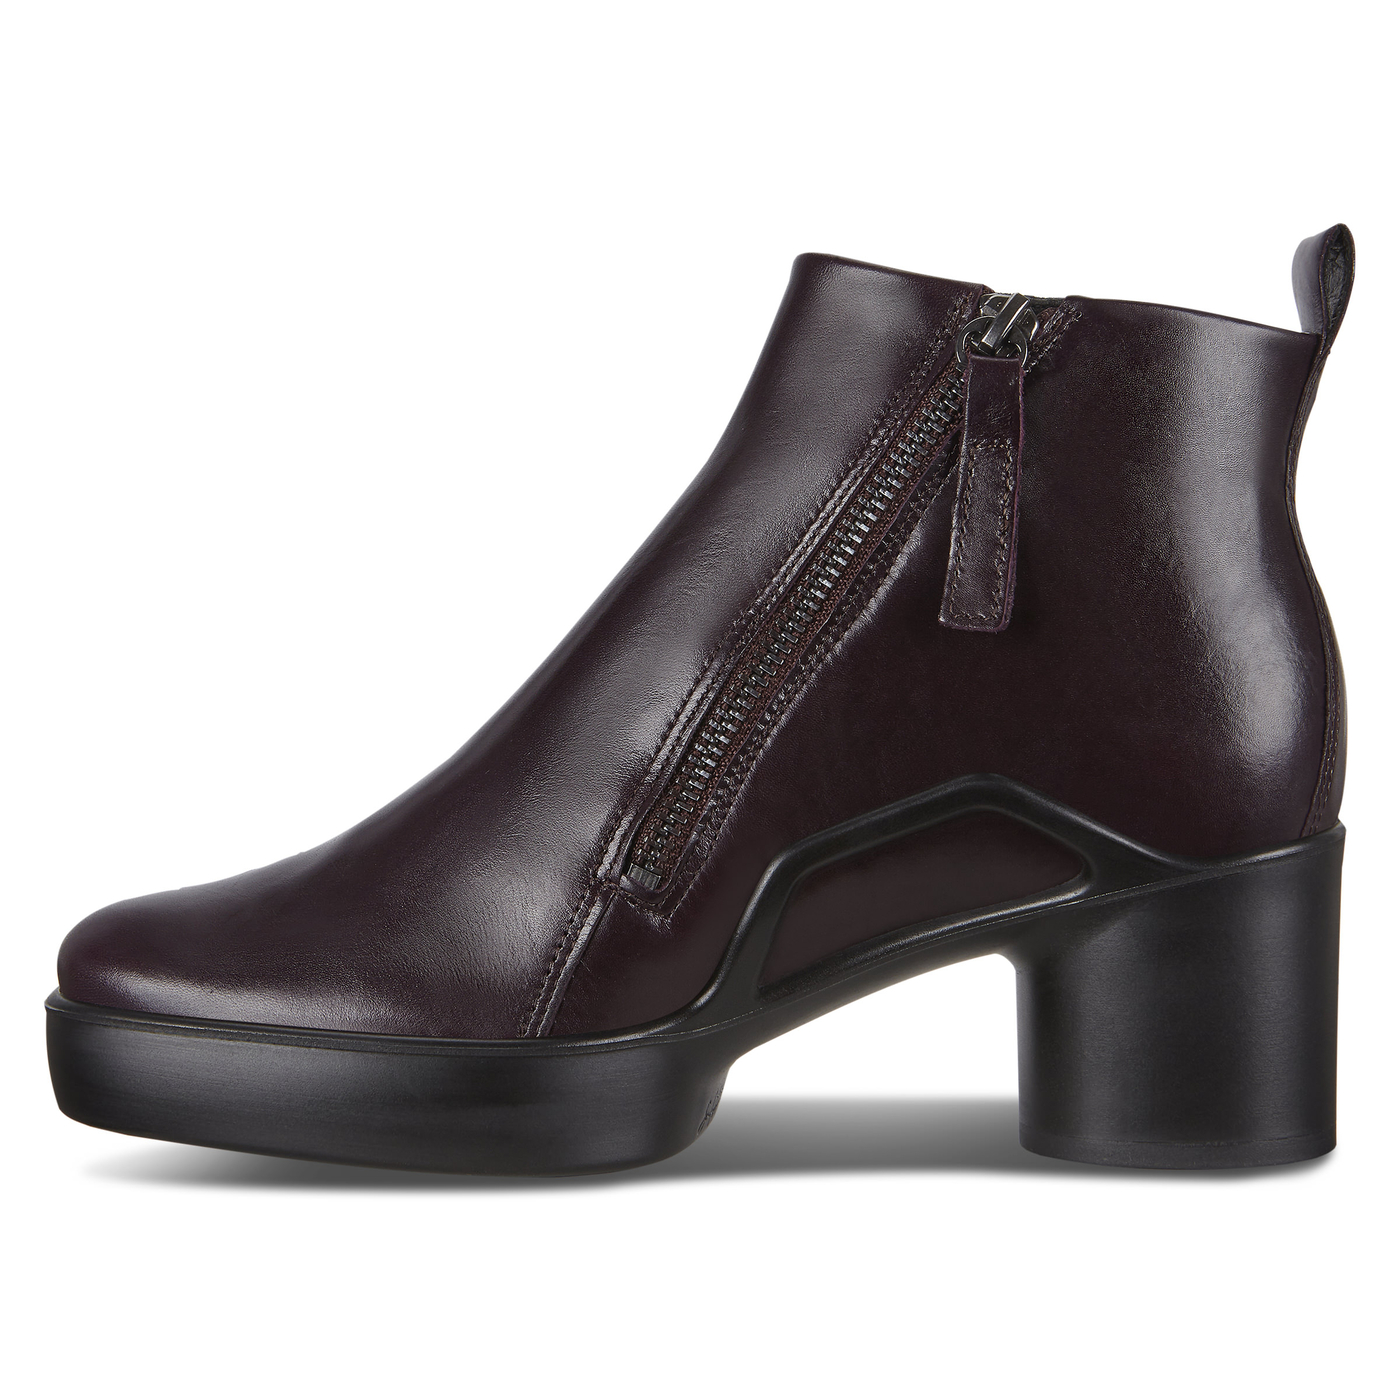 ECCO SHAPE SCULPTED MOTION Zip Up Boot 35mm